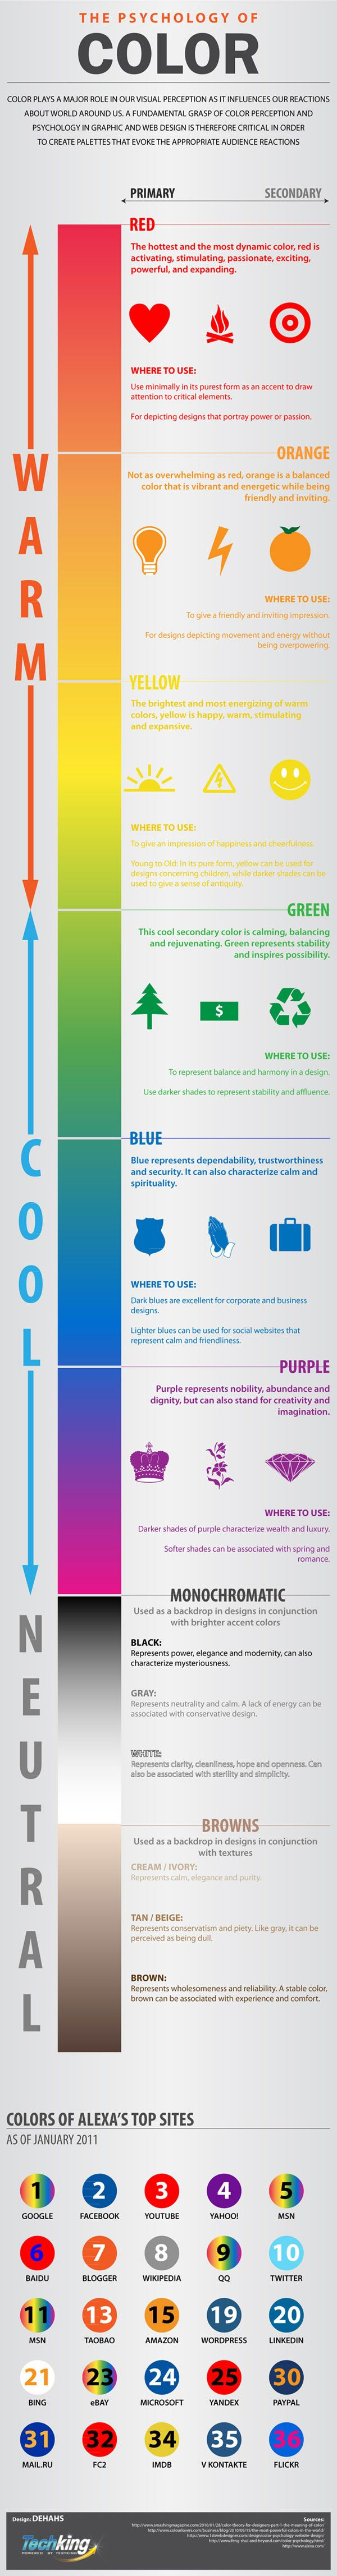 The Psychology of Color❥ via #martablasco ❥ http://pinterest.com/martablasco/